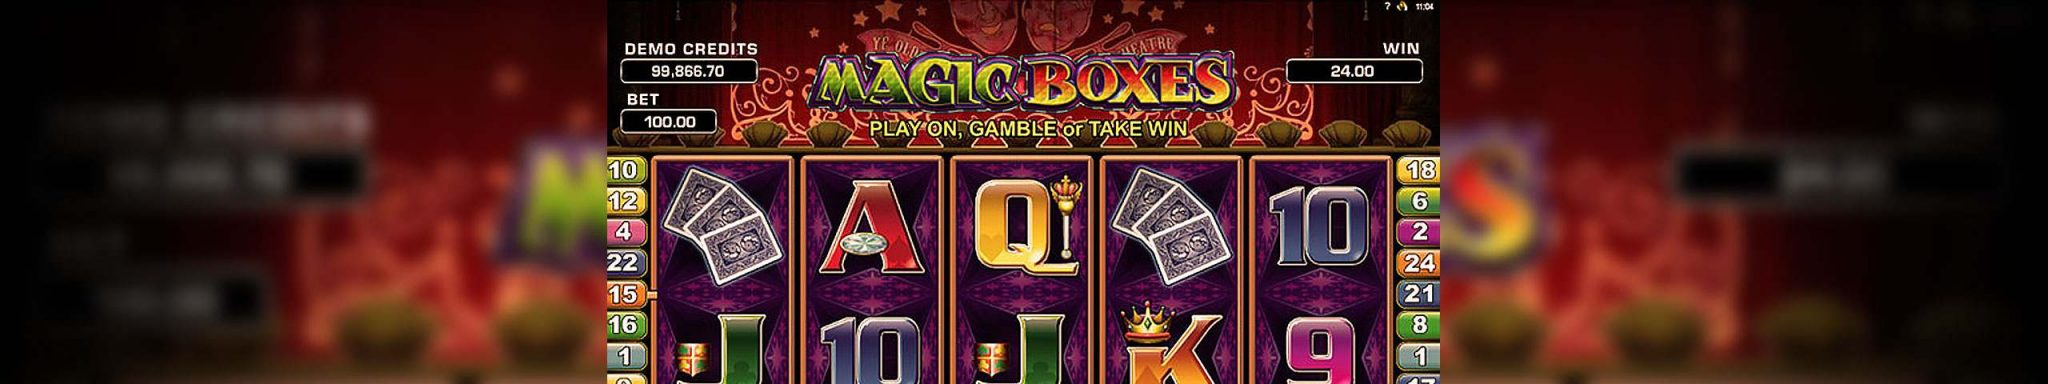 Magic Boxes Microgaming spilleautomater slider